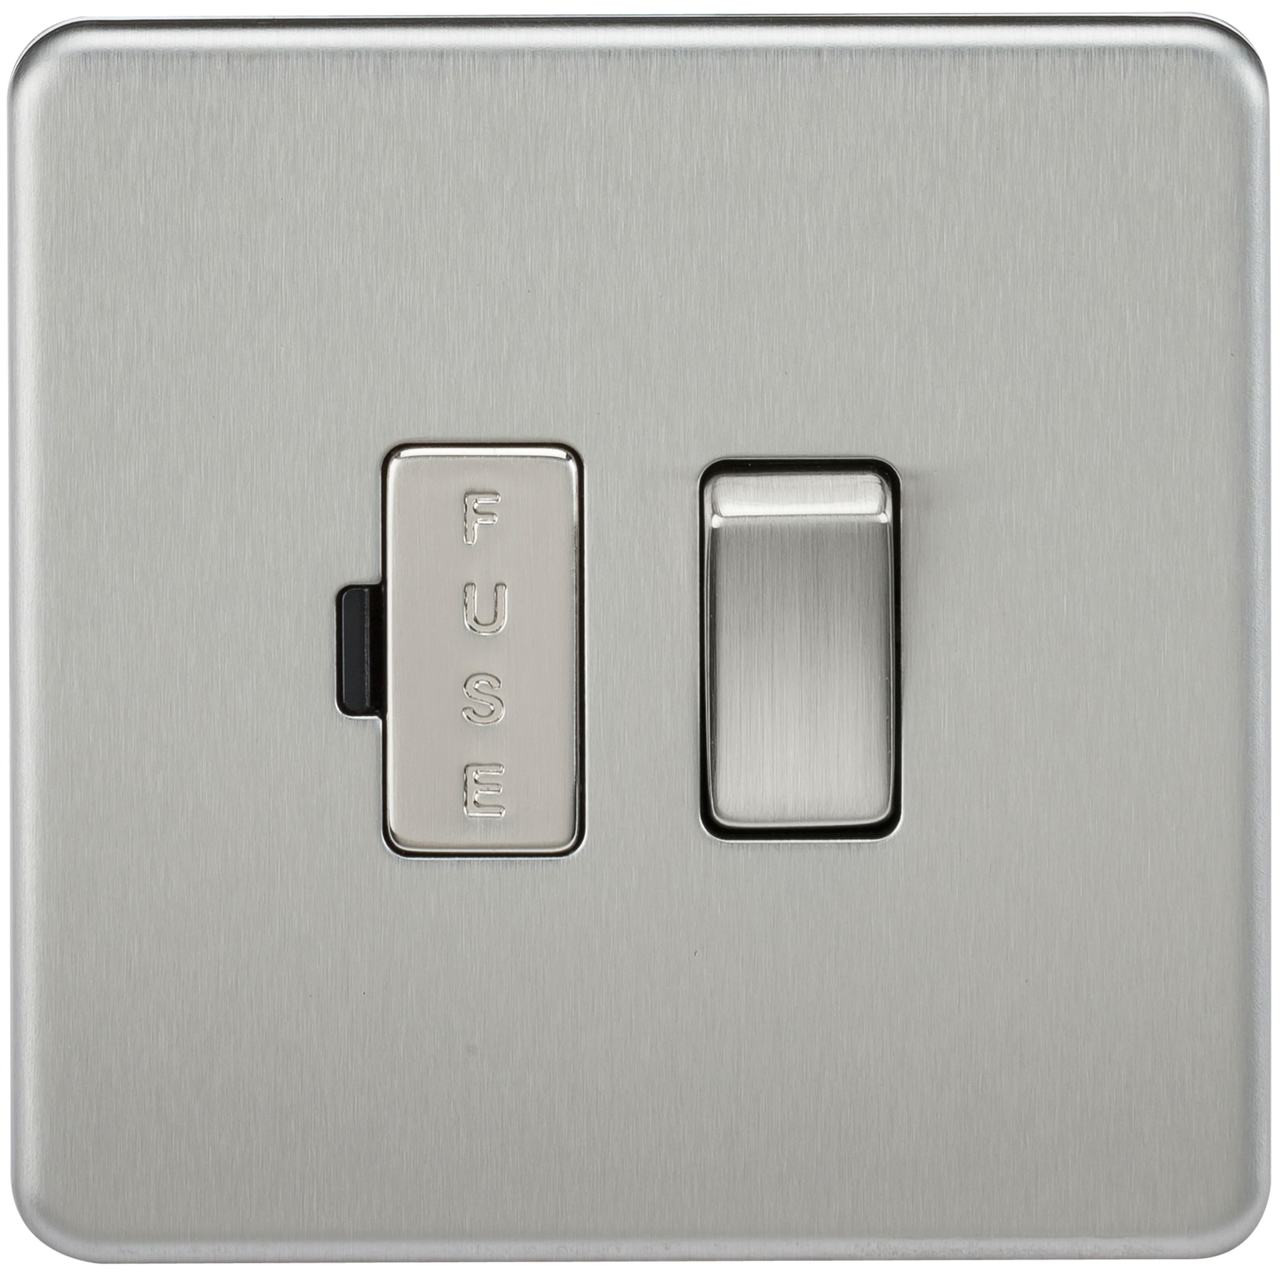 Screwless 13A Switched Fused Spur Unit - Brushed Chrome (DFL1SF6300BC)